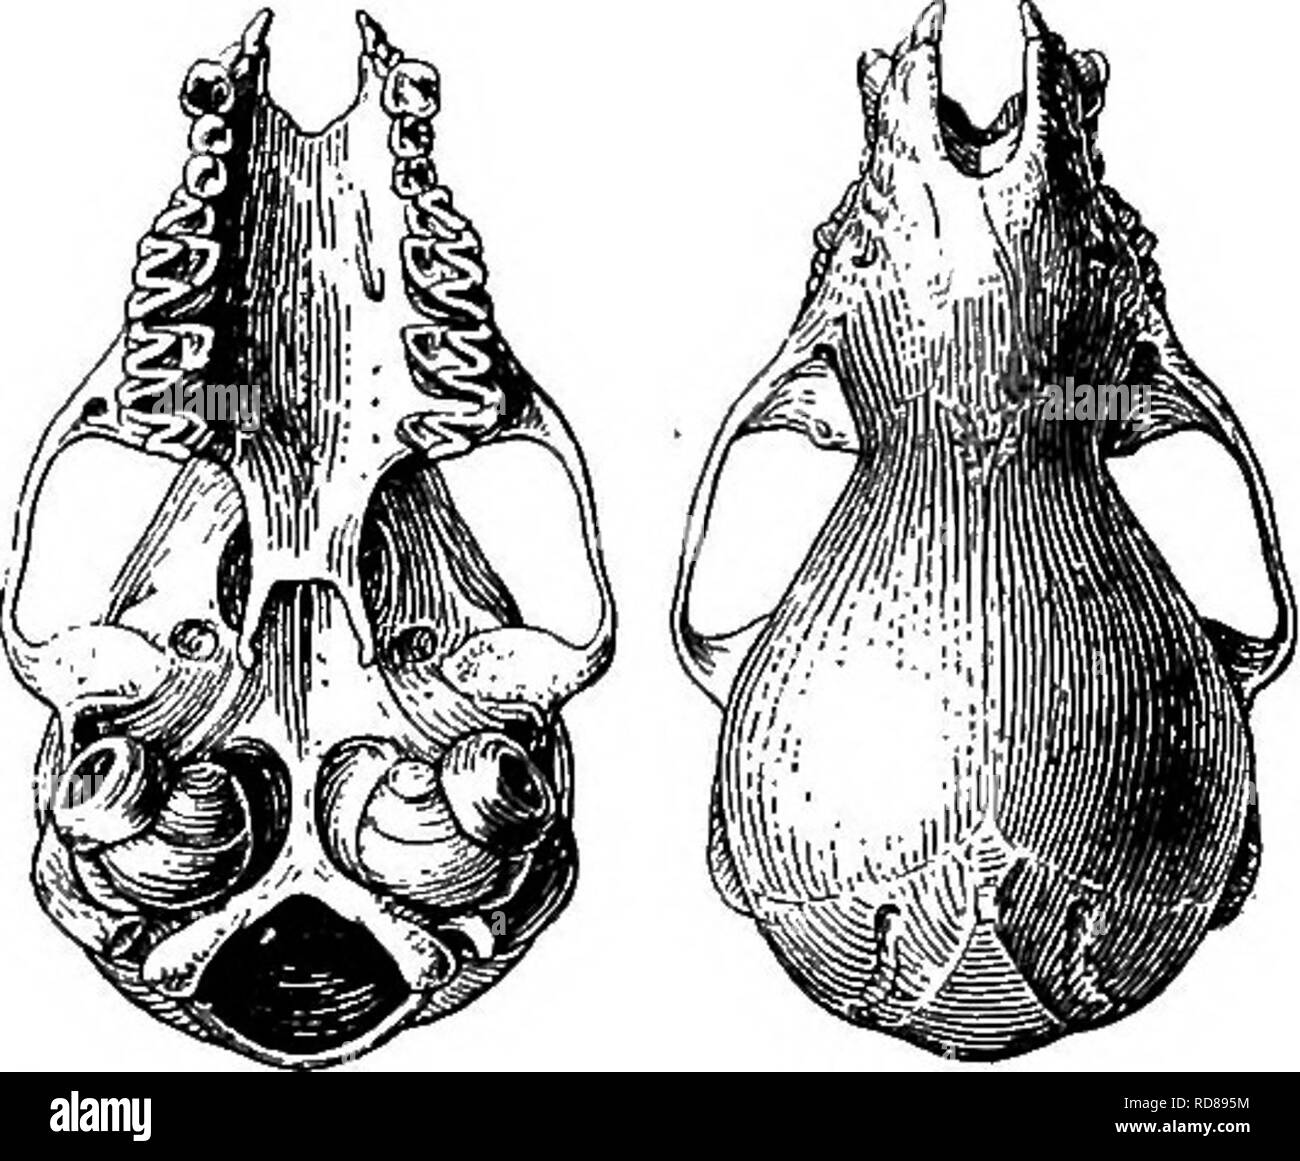 . The families and genera of bats . Bats; Bats. commissures well developed, the area of the crown about half that of first or second; lower molars with all the cusps present and normal in form, no great contrast in height of protoconid and hypoconid in m ! and m ,. Skull (fig. 38) slender and lightly built, the braincase large, smoothly rounded and abruptly elevated anteriorly, the rostrum slender and weak. There is no indication of sagittal crest or of supraorbital or lachrymal ridges. Nares very narrow, the width of the aperture as viewed from above scarcely or not half the length. Anterior  - Stock Image